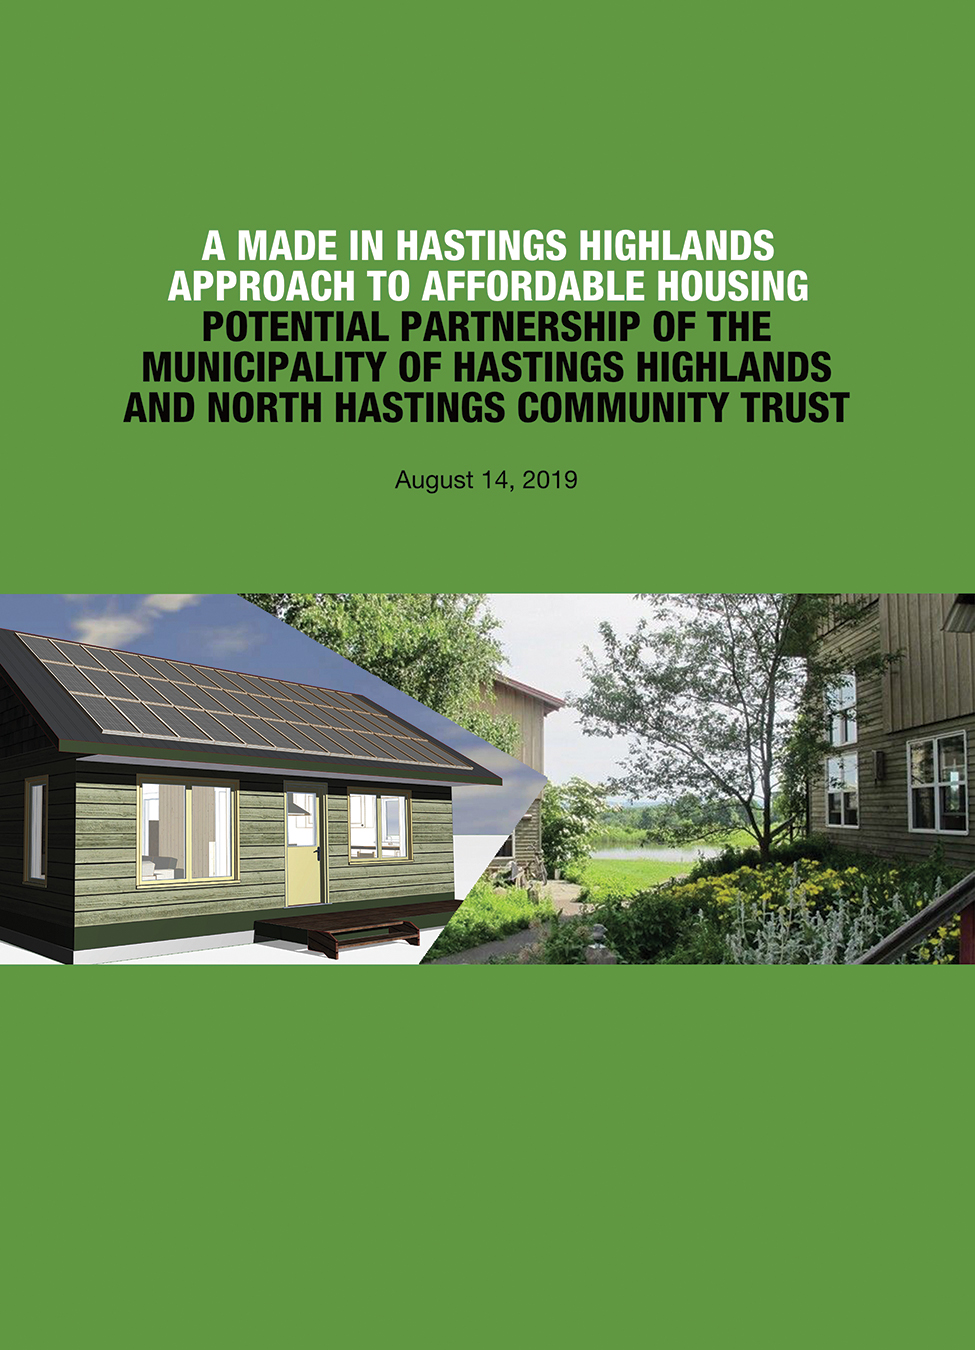 This Report was presented to the Council of the Municipality of Hastings Highlands on August 14, 2019.